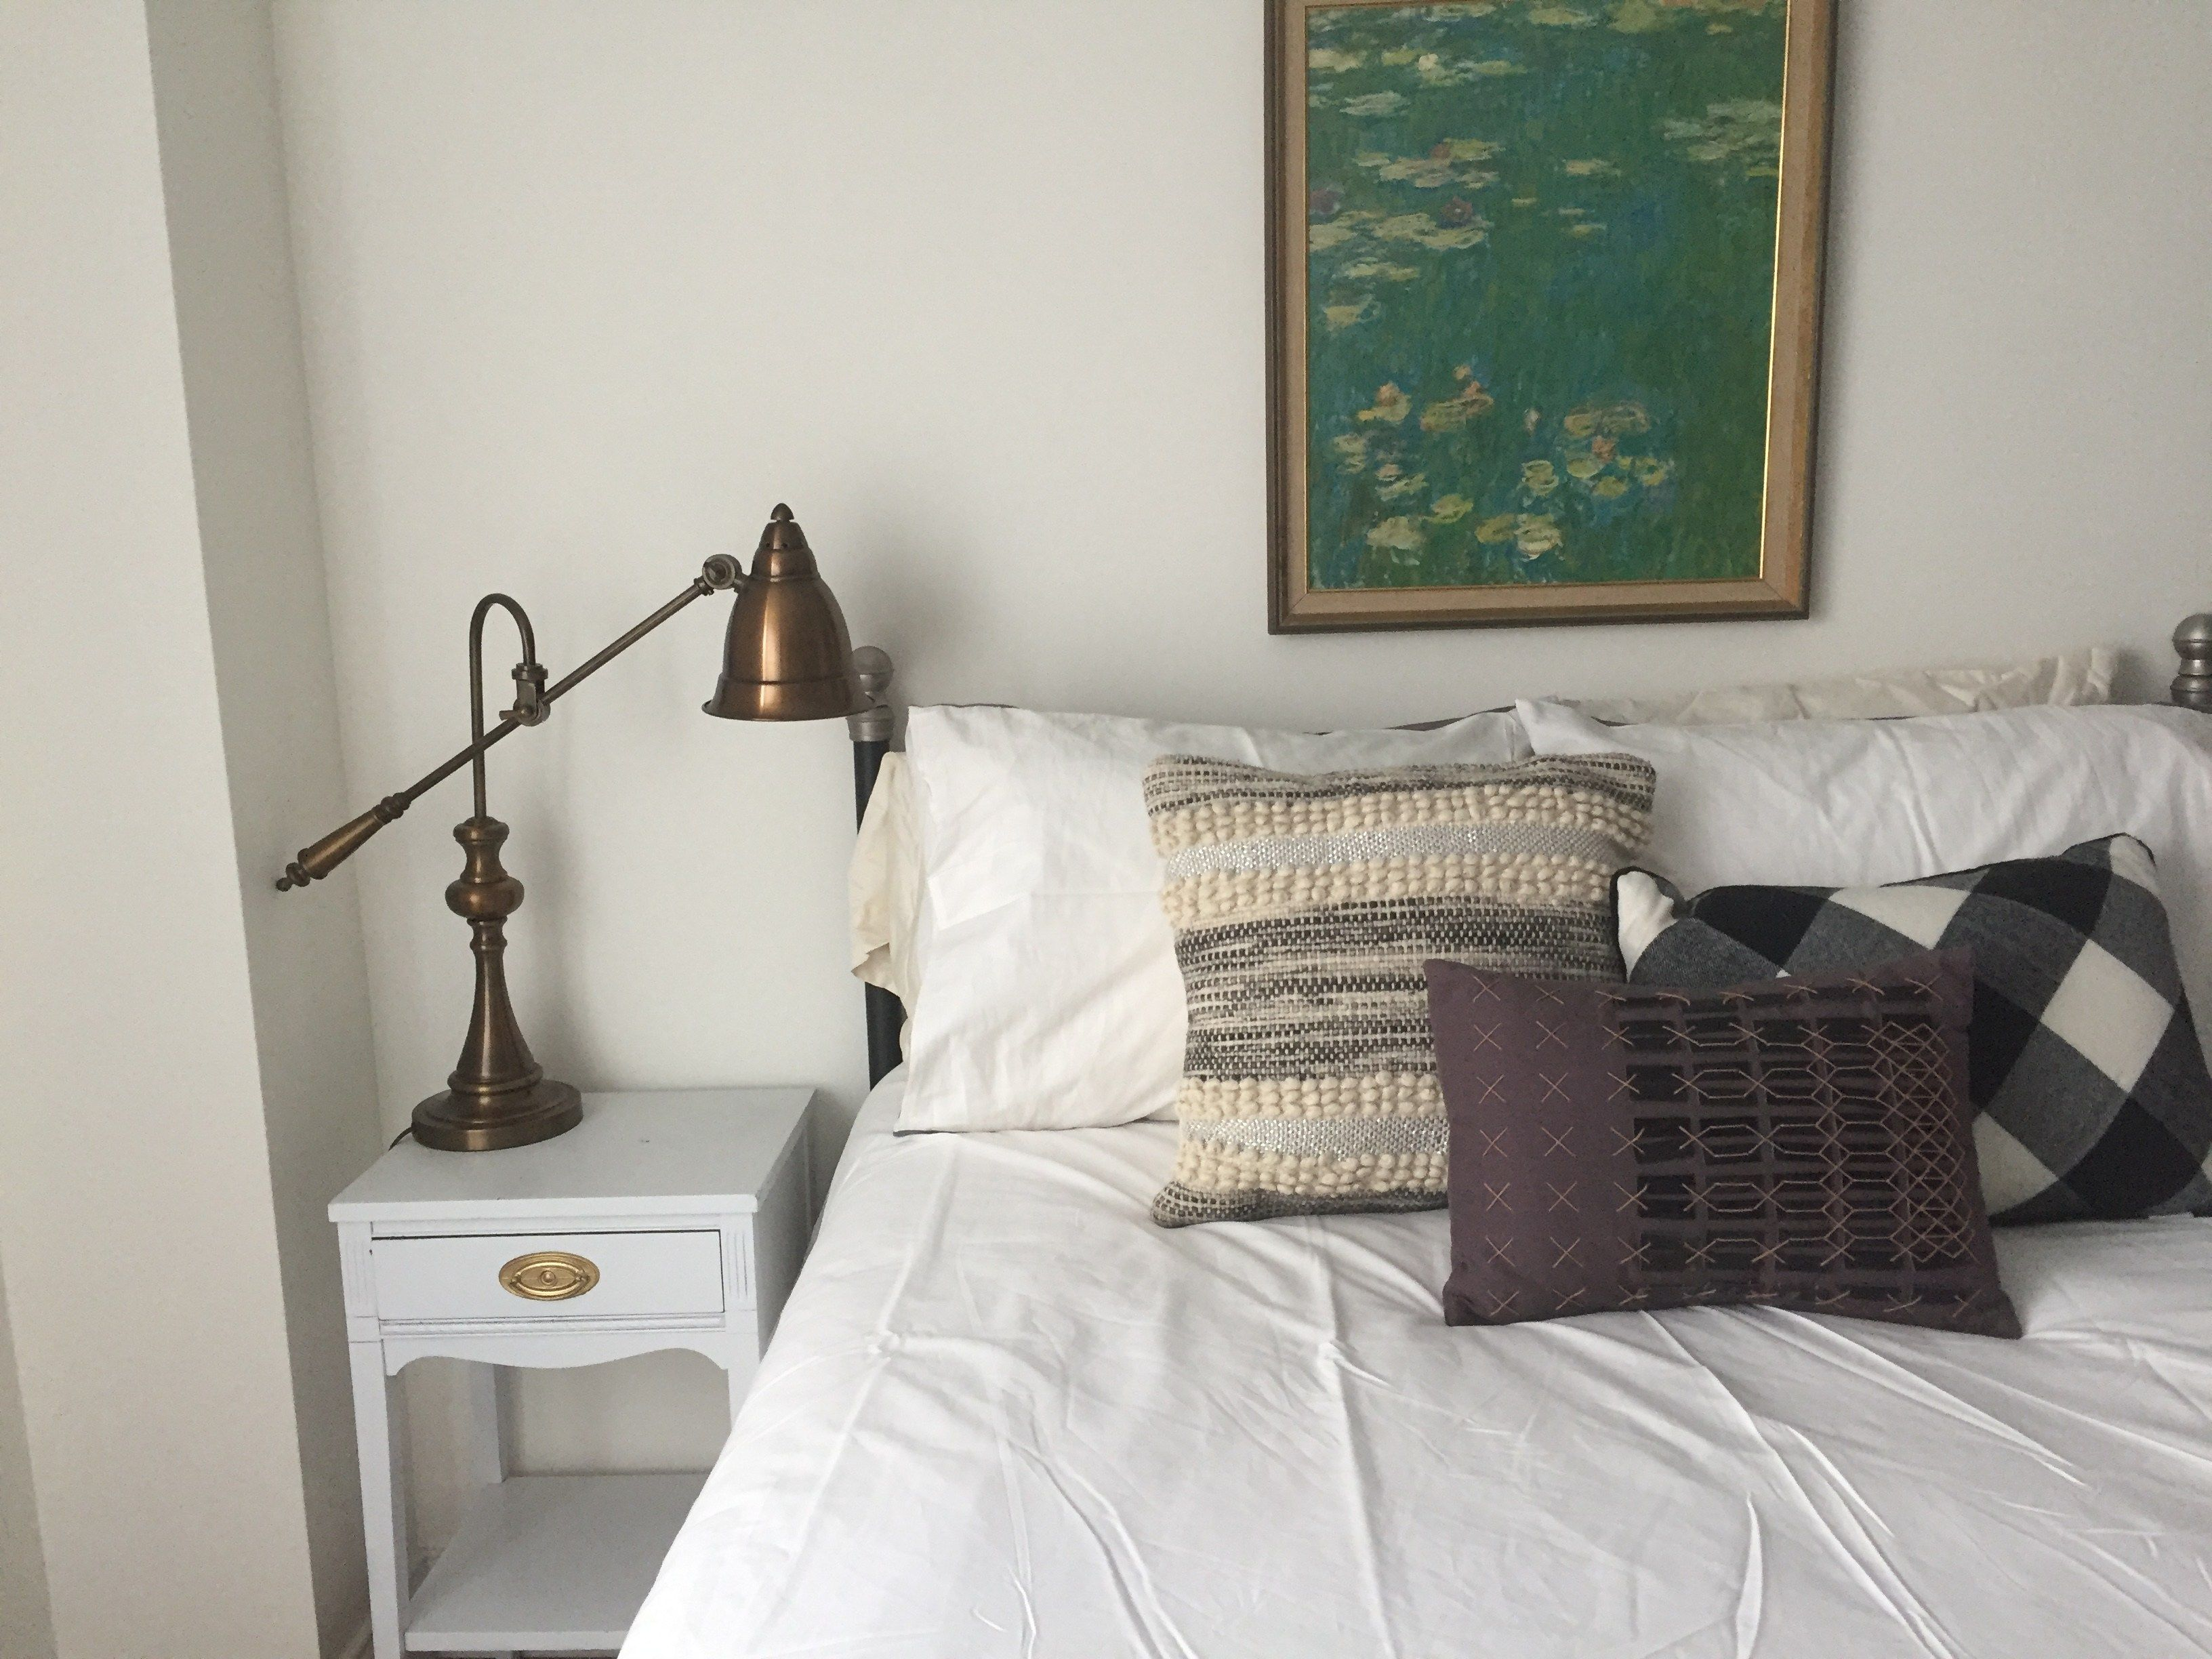 Fall bedding refresh | Decor + Styling Projects | Pinterest ...